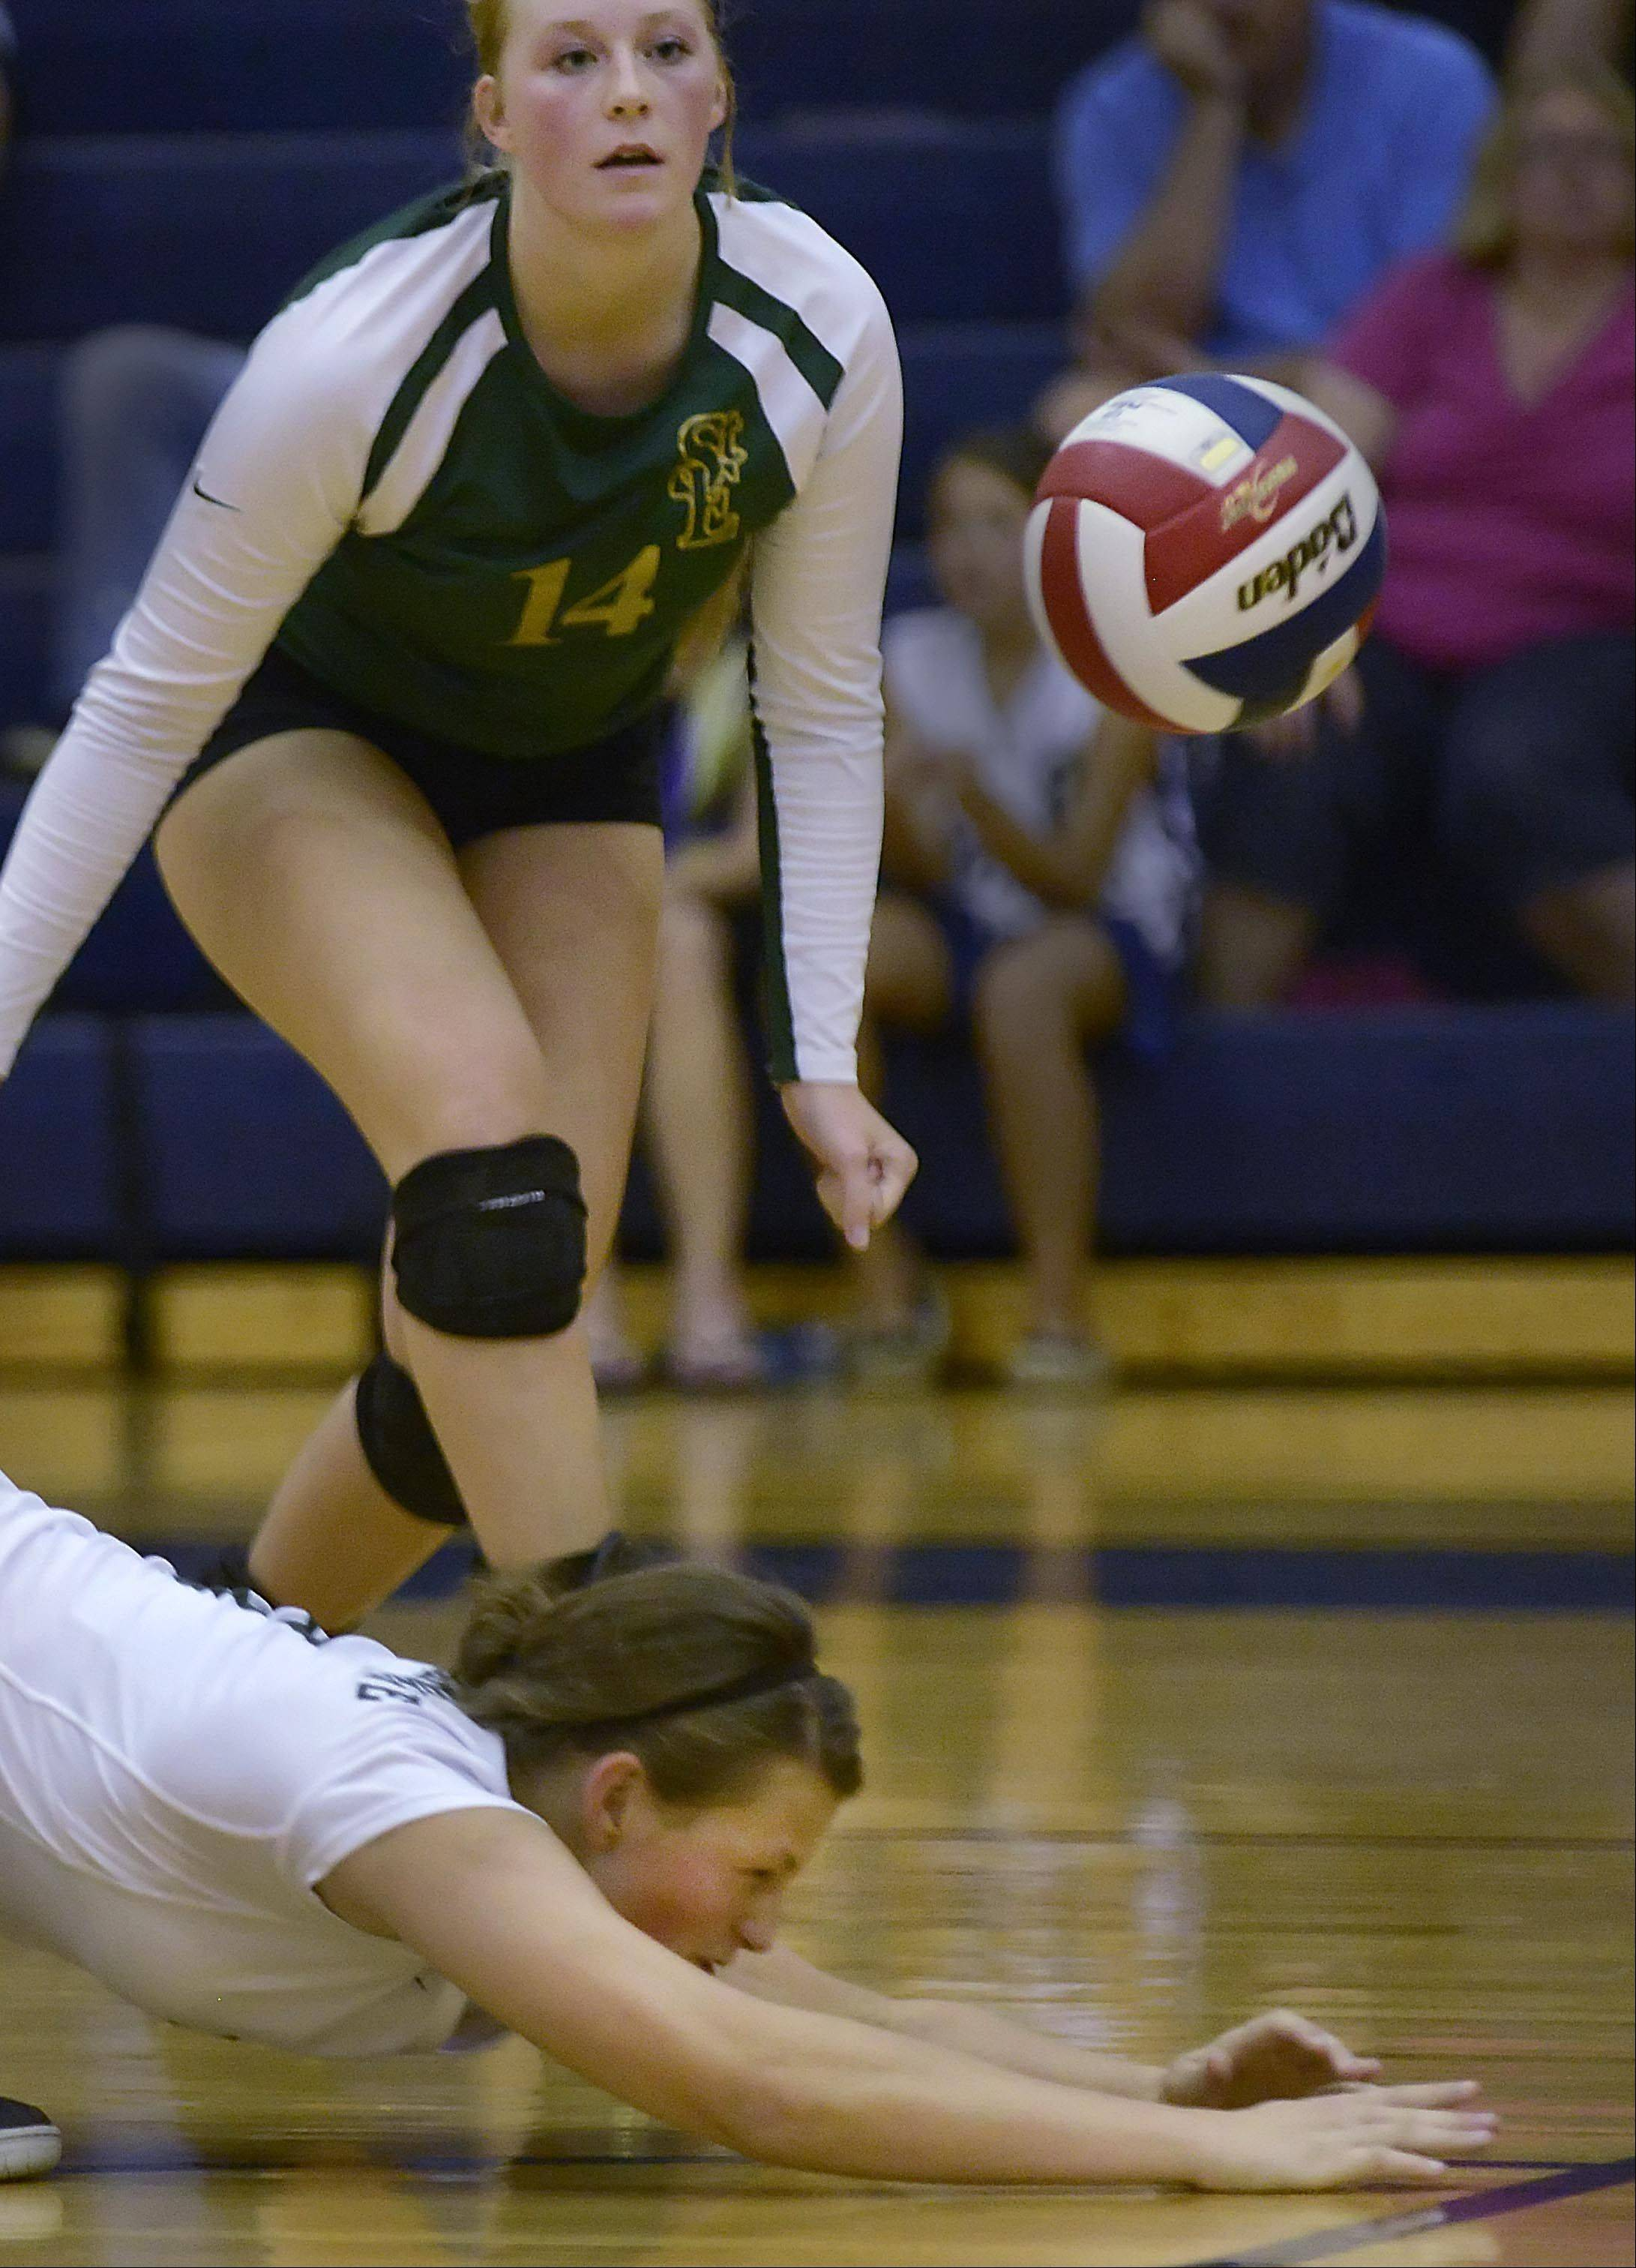 St. Edward's Allison Kruk hits the floor as she digs a shot by South Elgin during Wednesday's volleyball match in South Elgin.